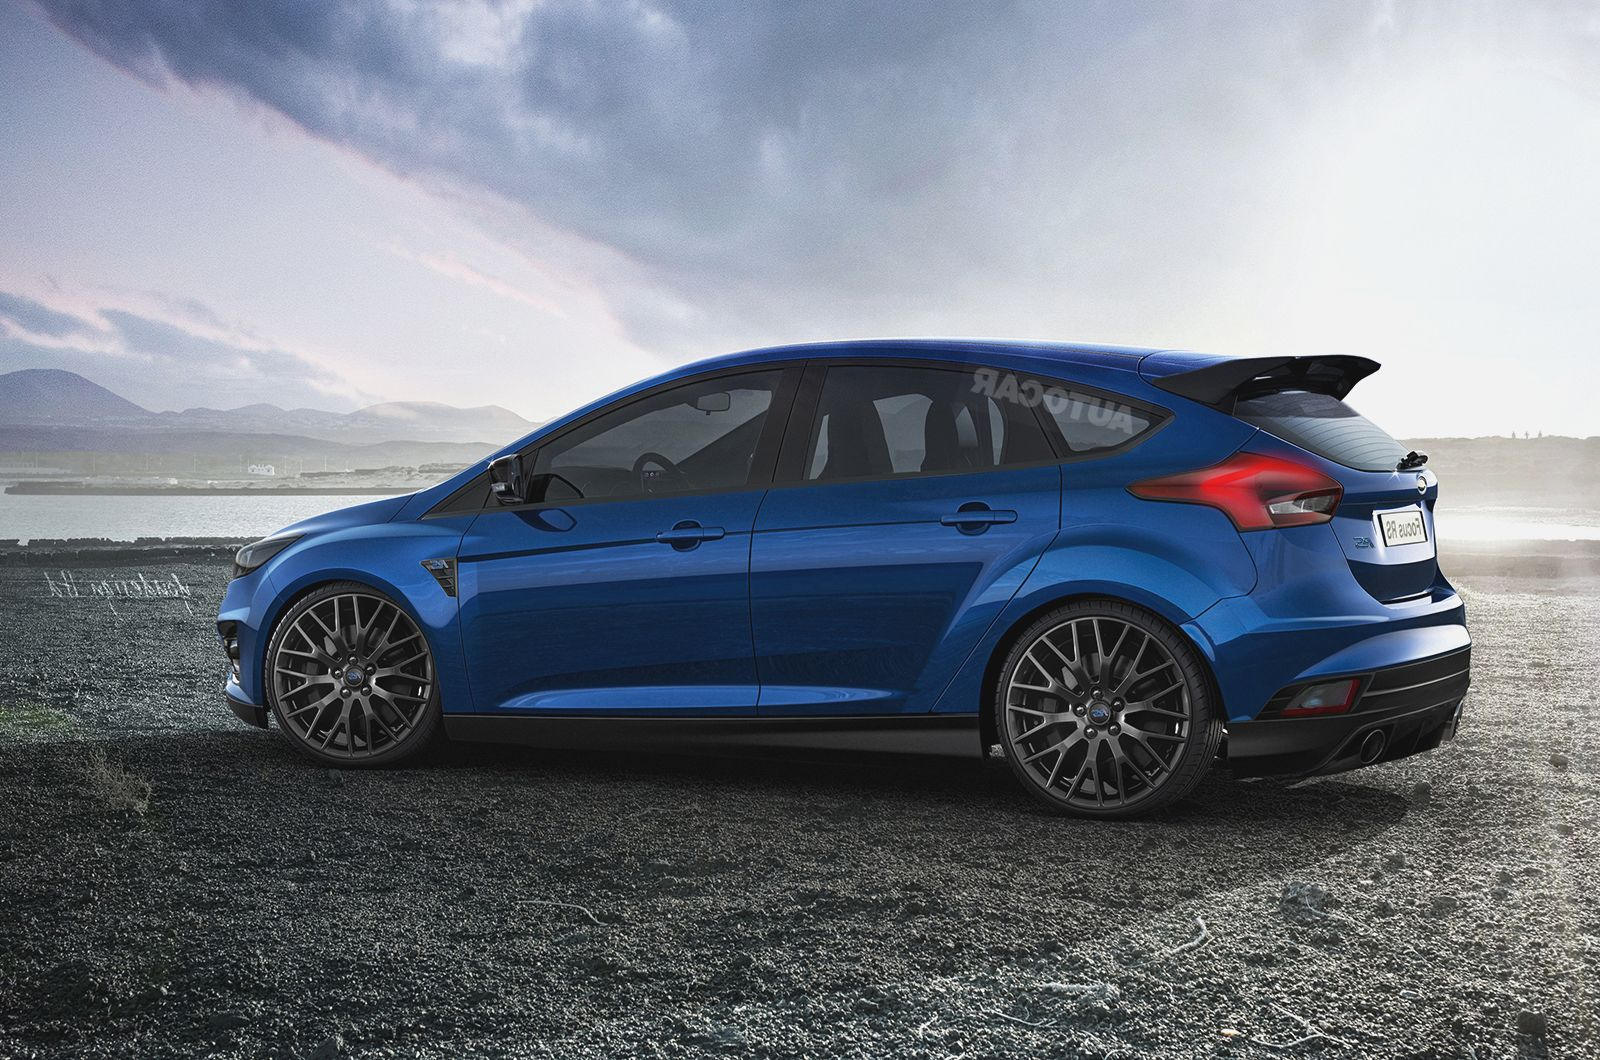 30 2016 Ford Focus Rs Wallpaper On Wallpapersafari